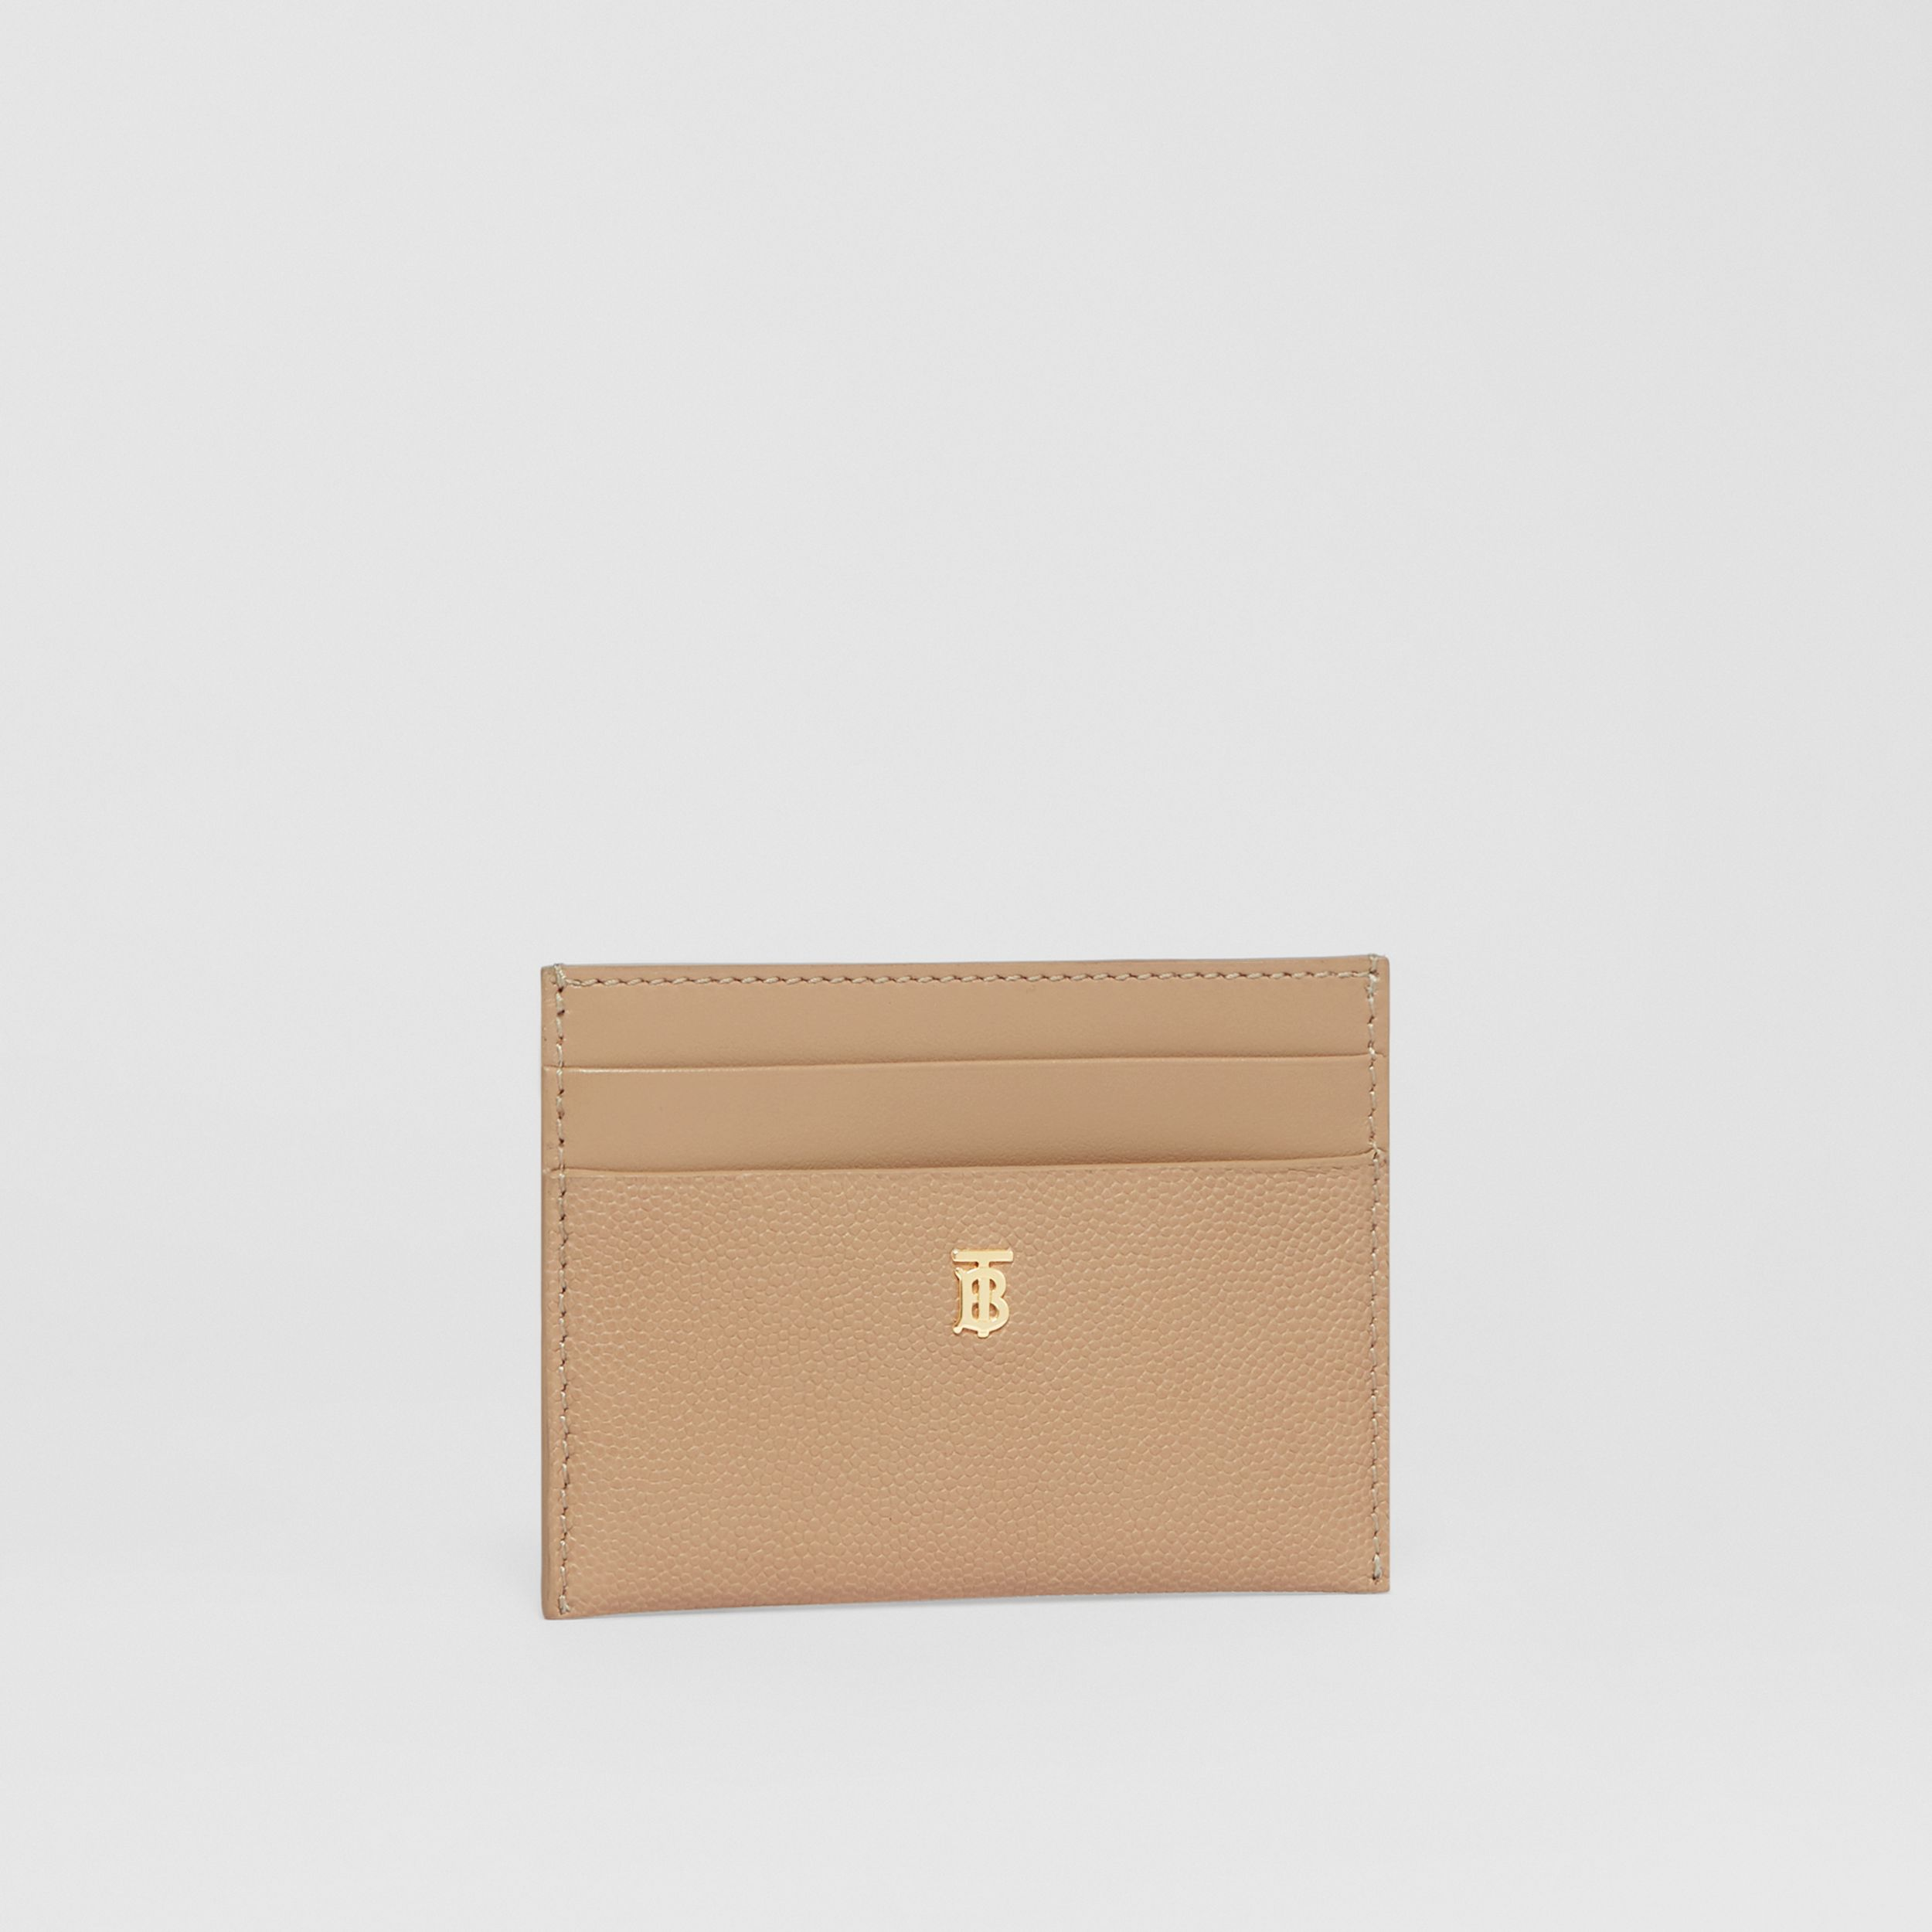 Monogram Motif Leather Card Case in Archive Beige - Women | Burberry - 3